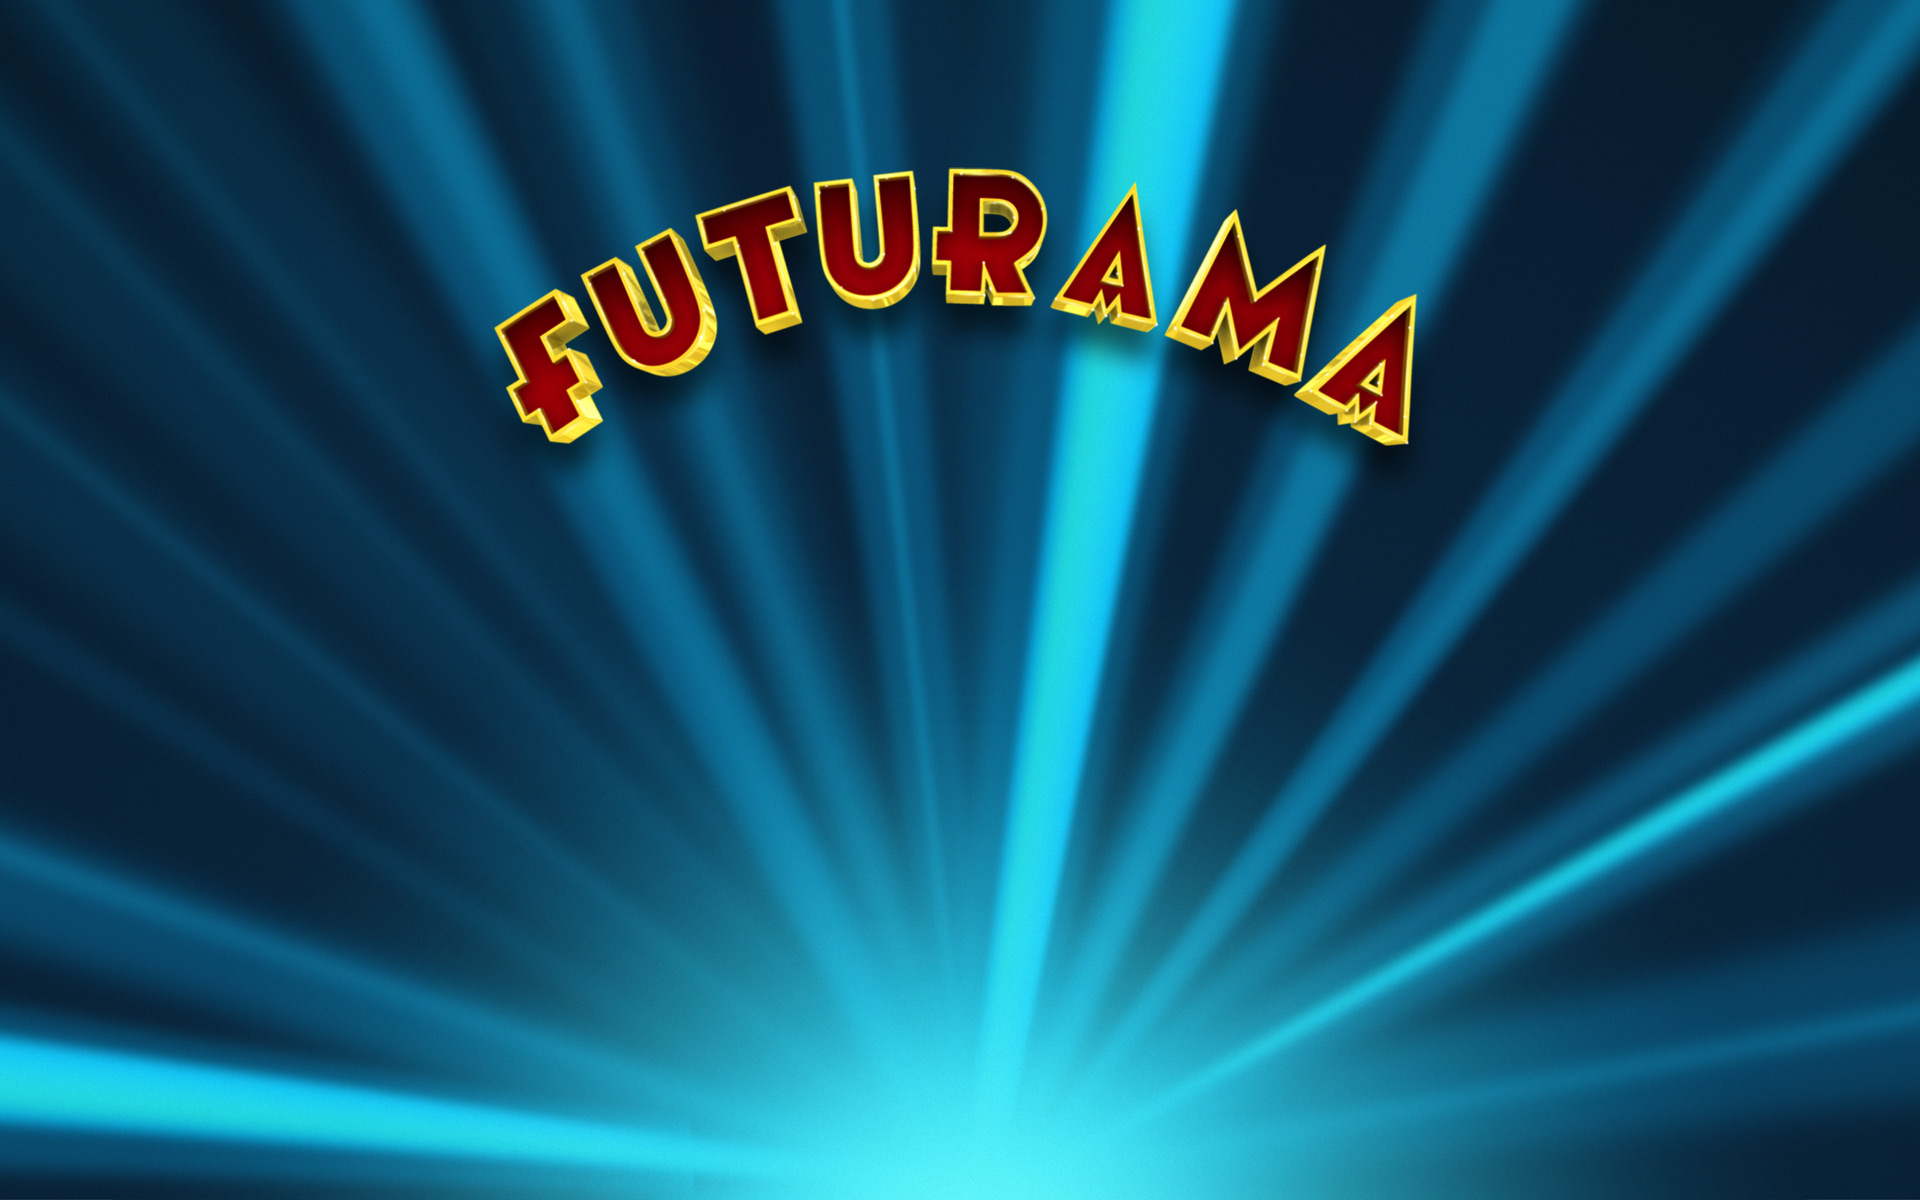 futurama wallpaper 16235